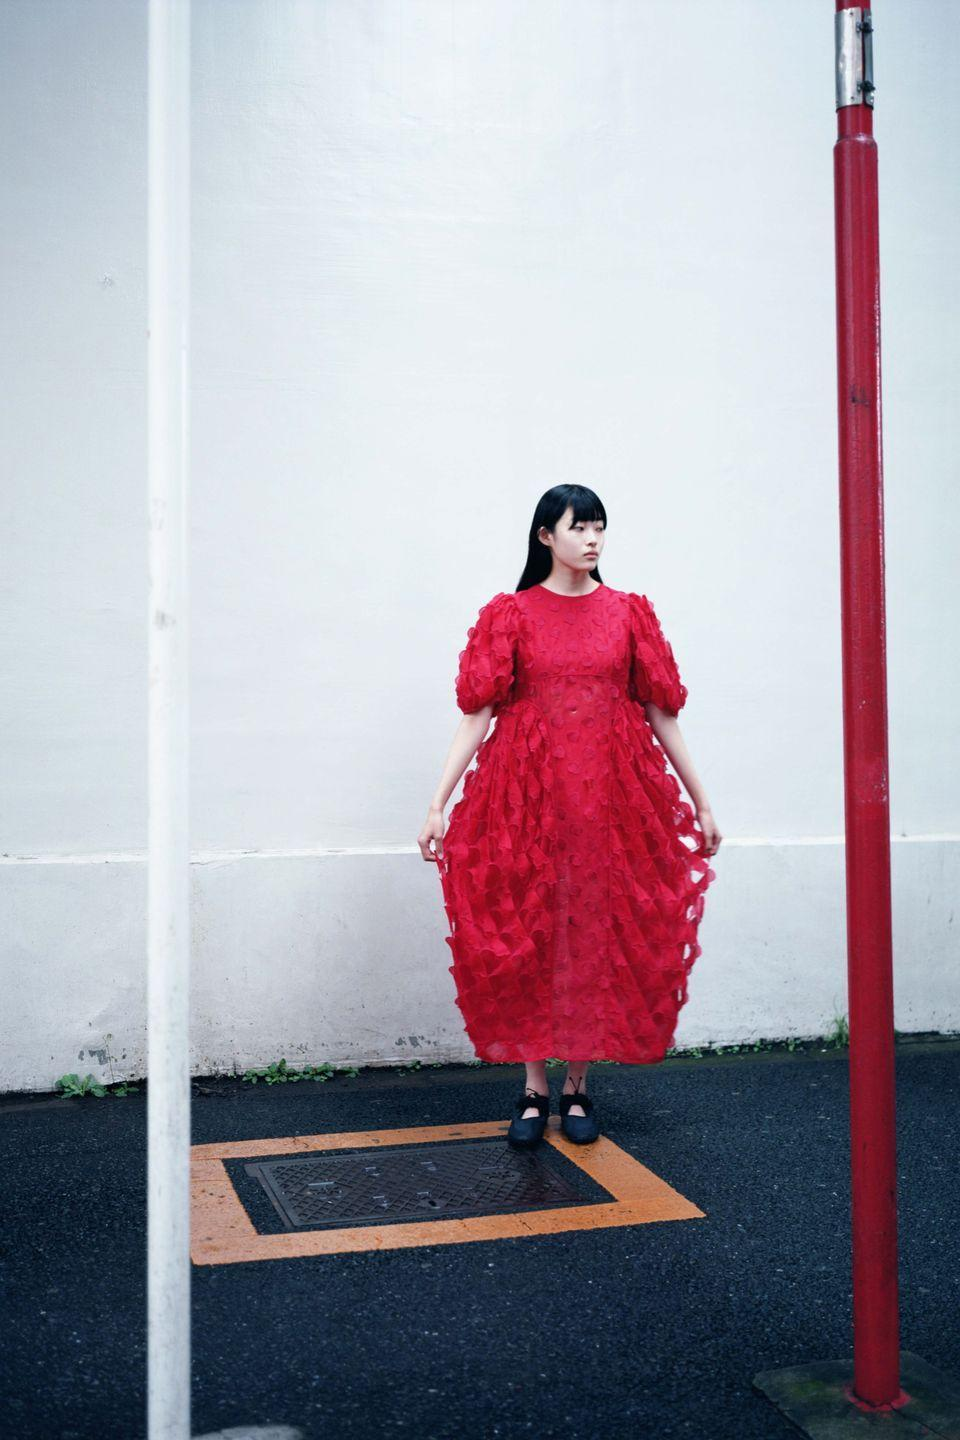 Photo credit: Takashi Homma for Cecilie Bahnsen